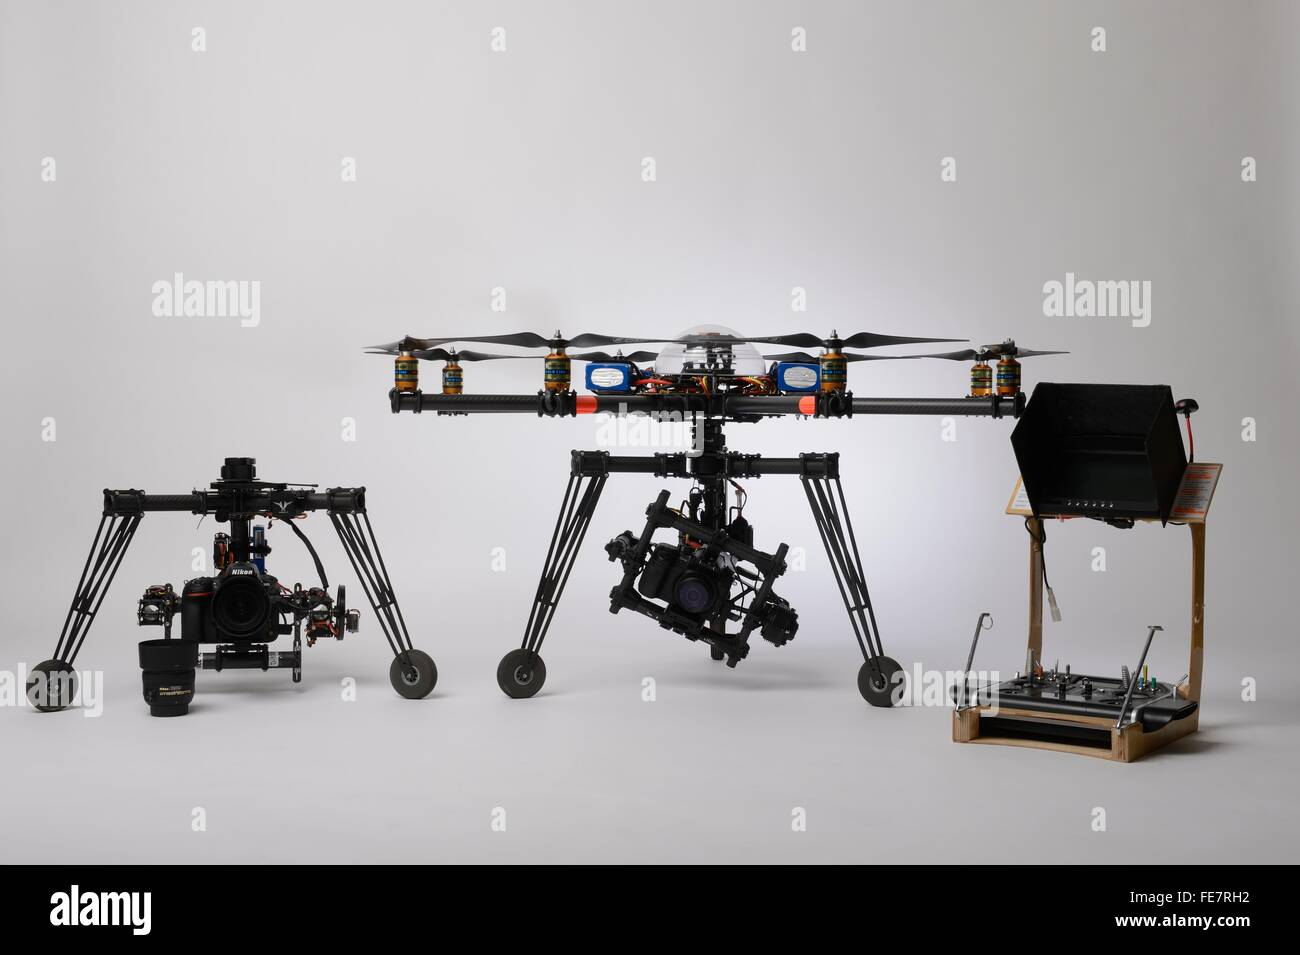 Multirotor type civil drone used for aerial photography and aerial filming with different gimbals and control desk - Stock Image